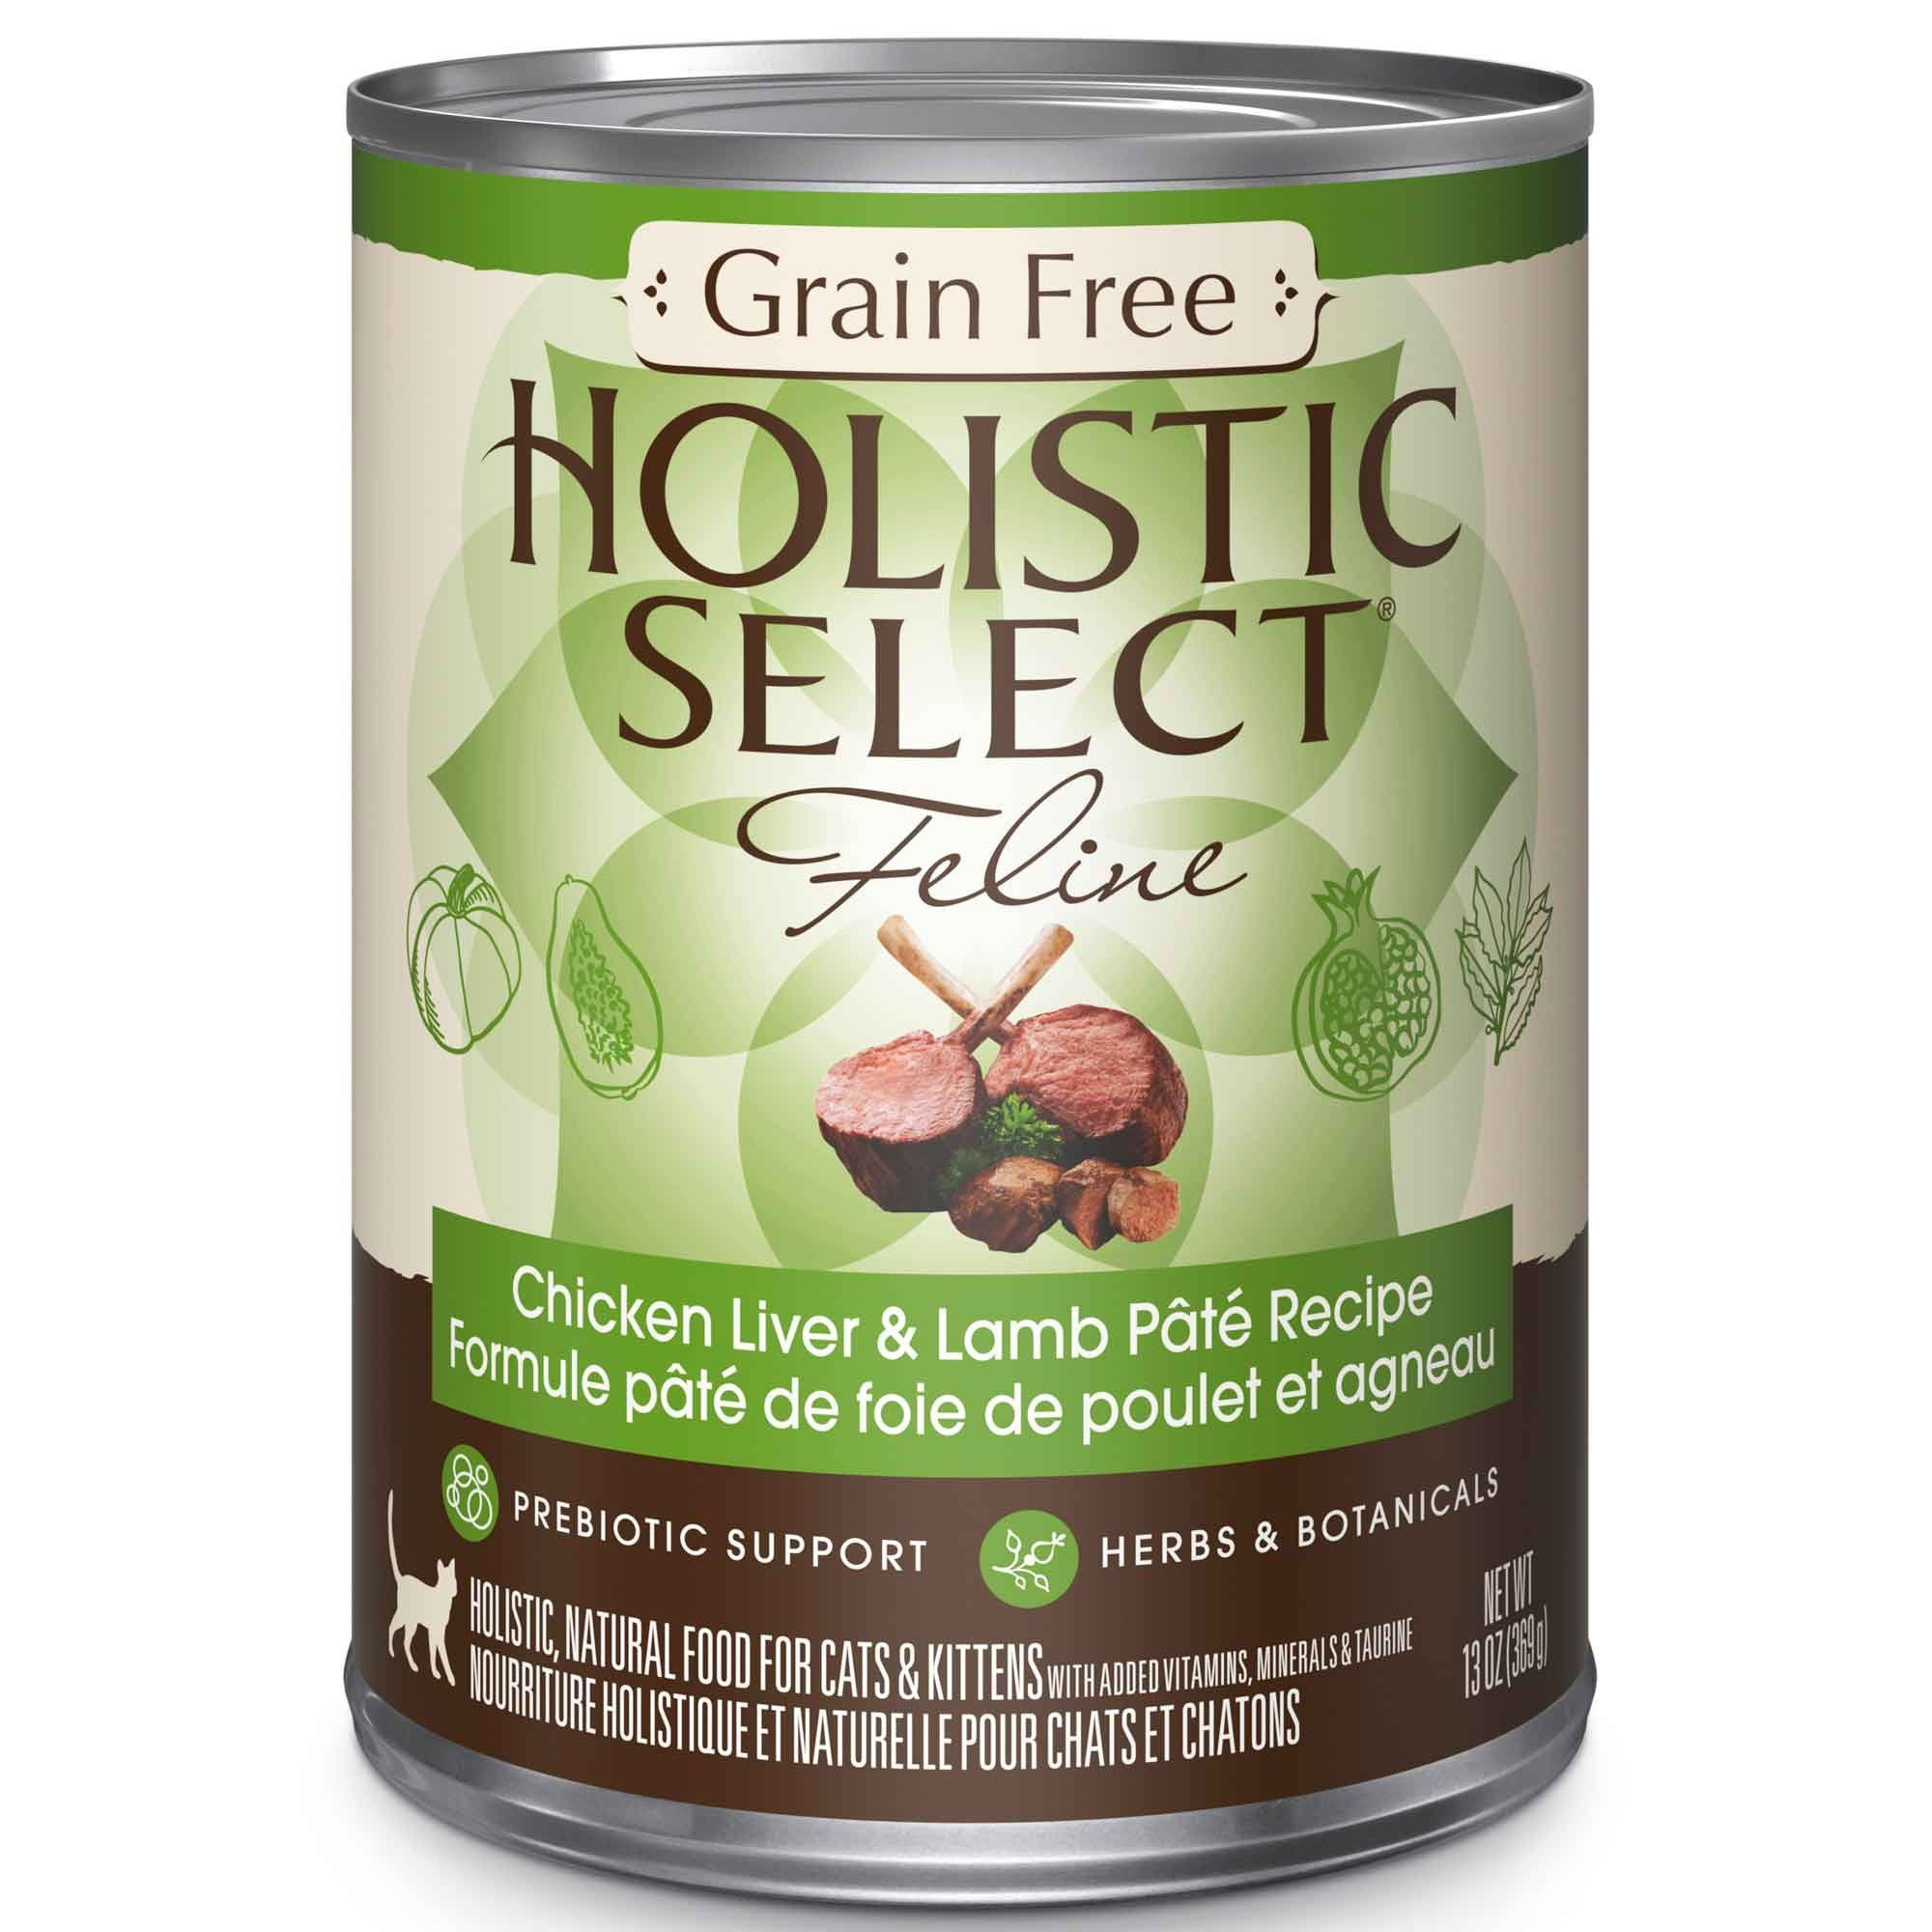 Holistic select cat food grain free chicken liver lamb pate holistic select cat food grain free chicken liver lamb pate forumfinder Choice Image